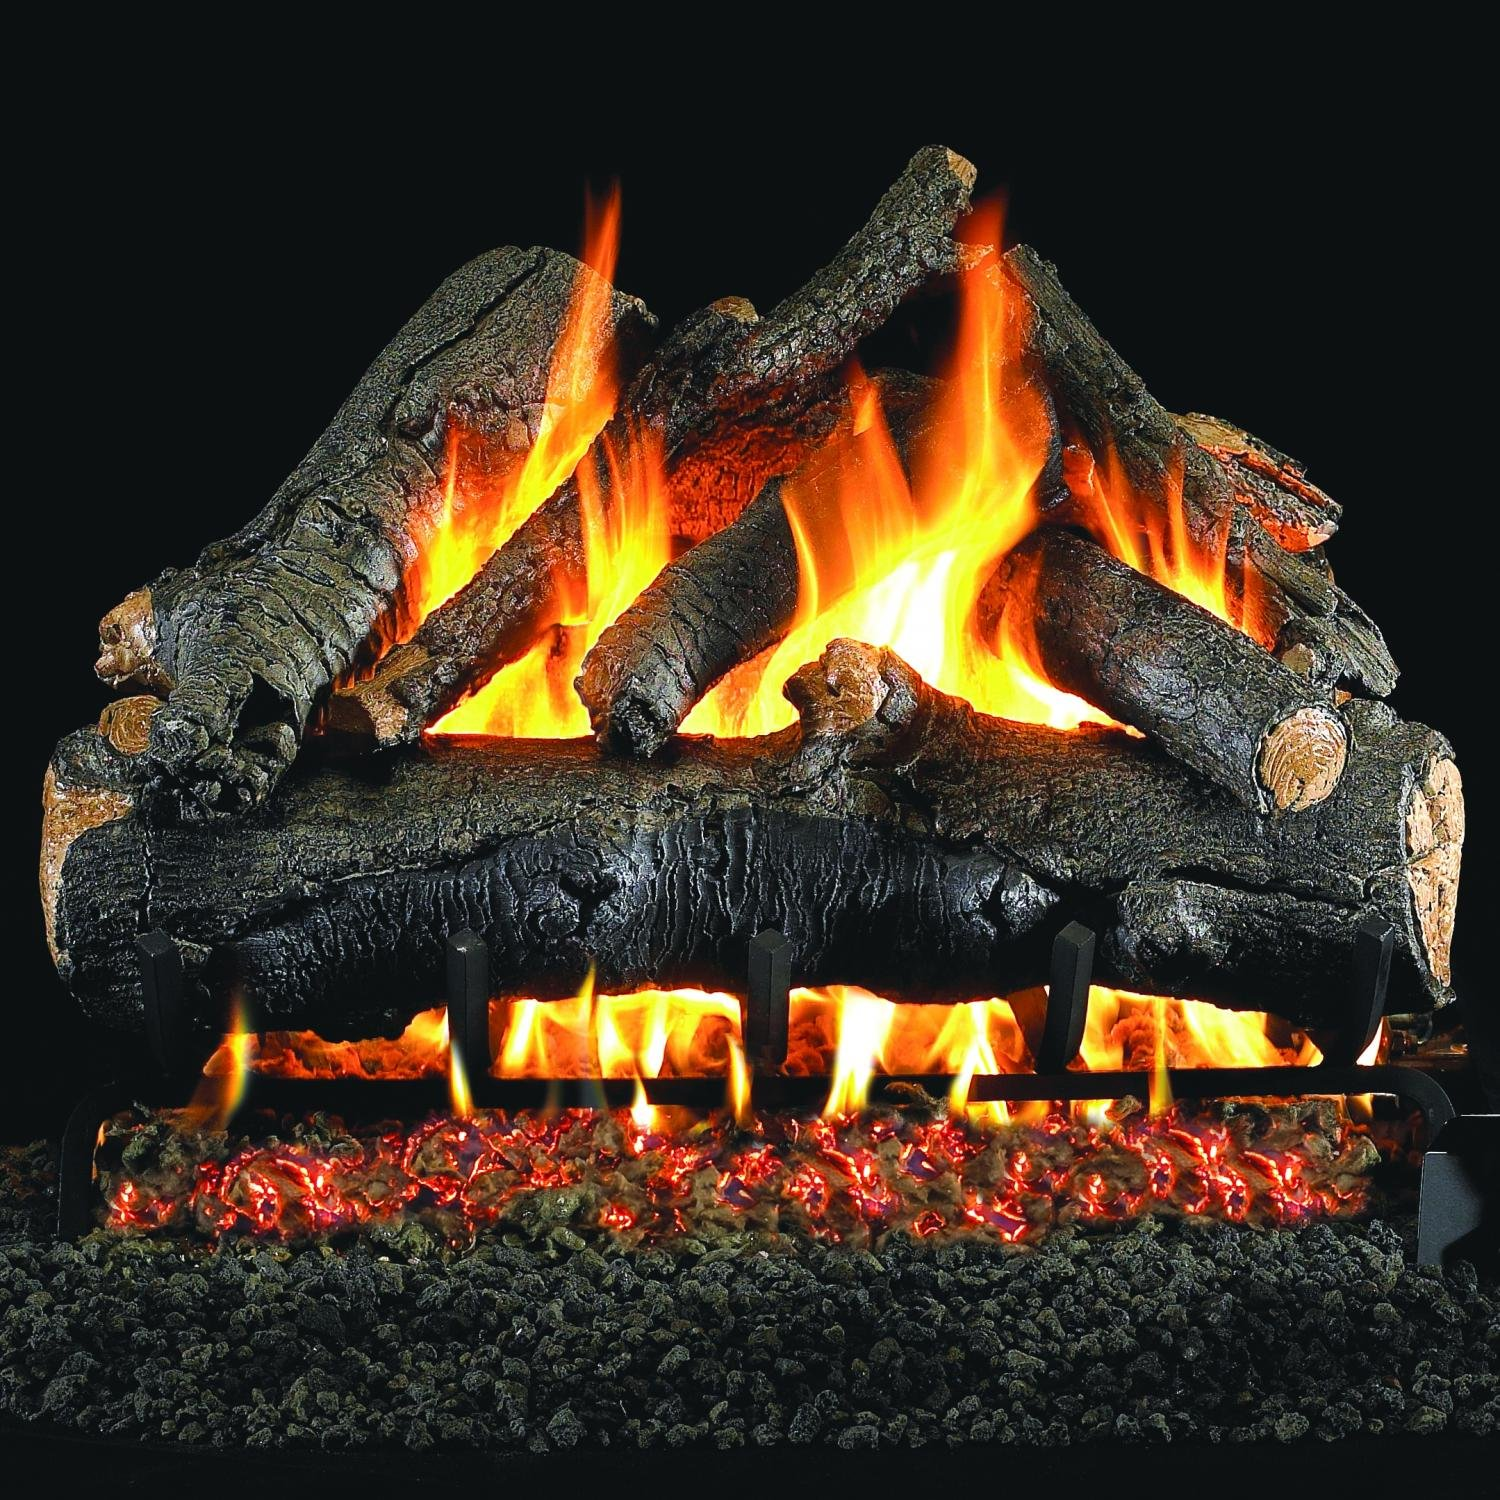 Peterson Real Fyre 30-inch American Oak Gas Log Set With Vented Natural Gas G4 Burner - Match Light by Peterson Real Fyre